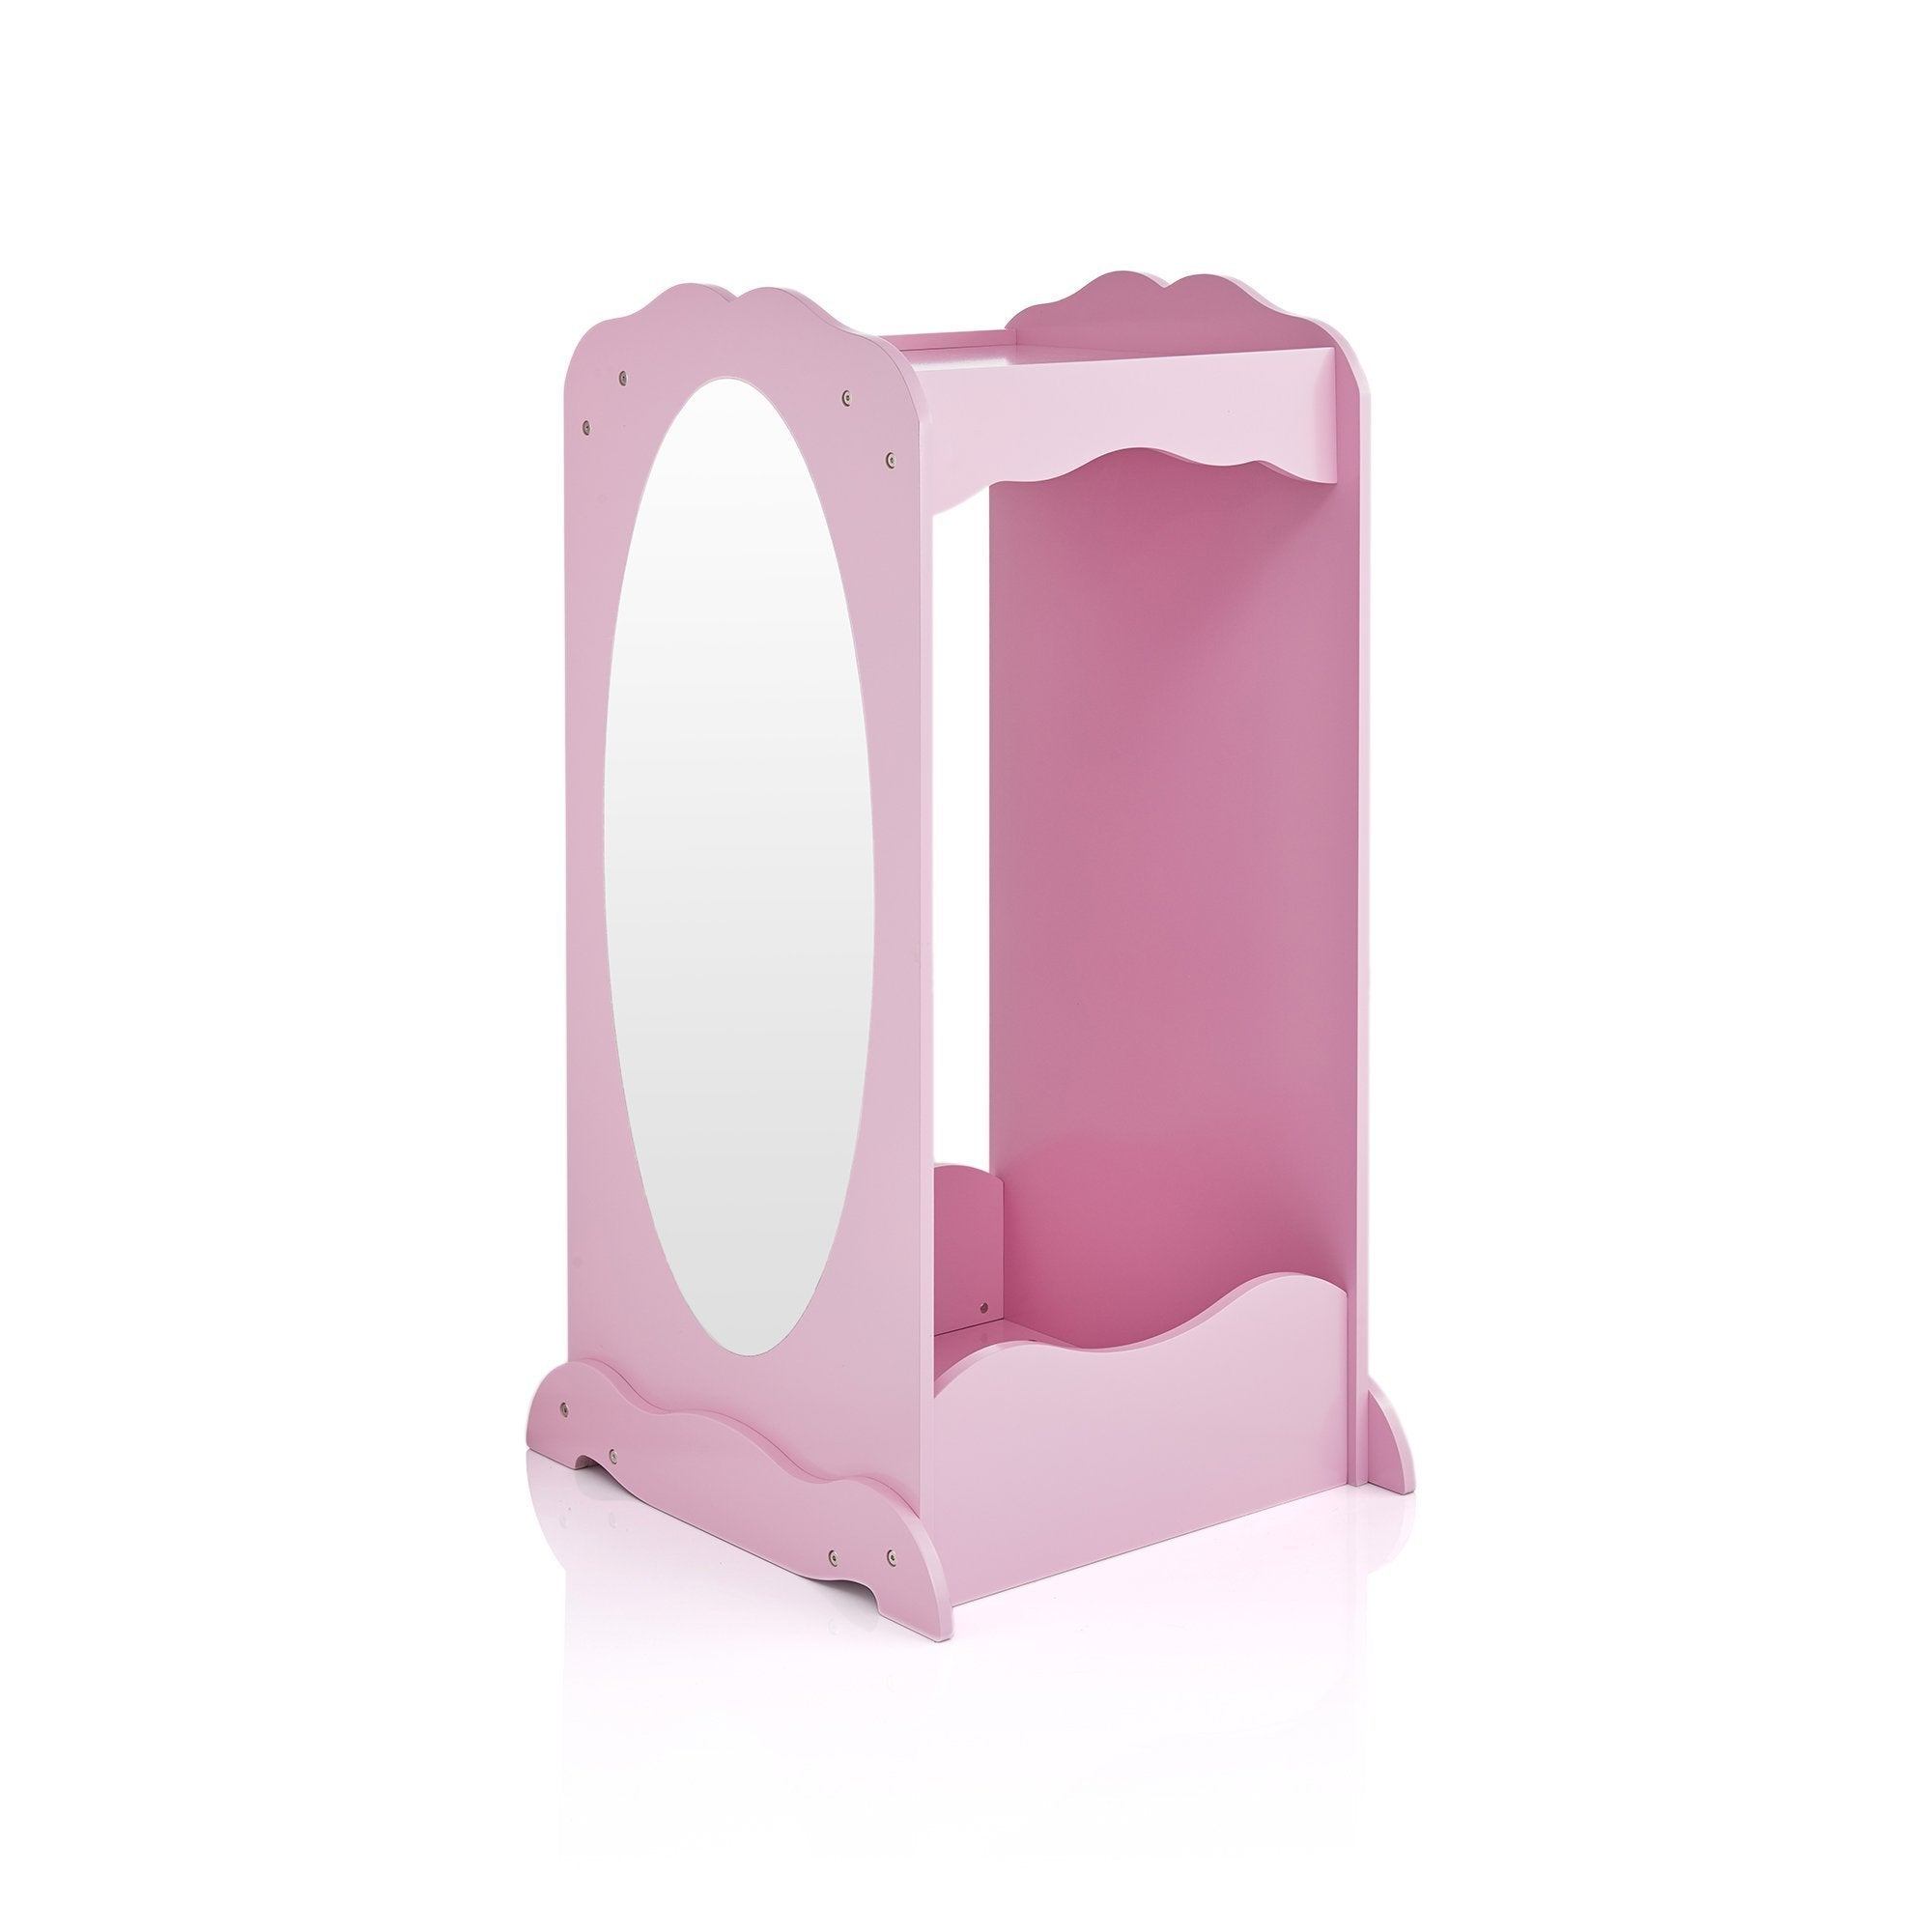 On amazon guidecraft dress up cubby center pink costumes accessoires storage shelf and rack with mirror for little girls and boys toddlers wooden wardrobe closet